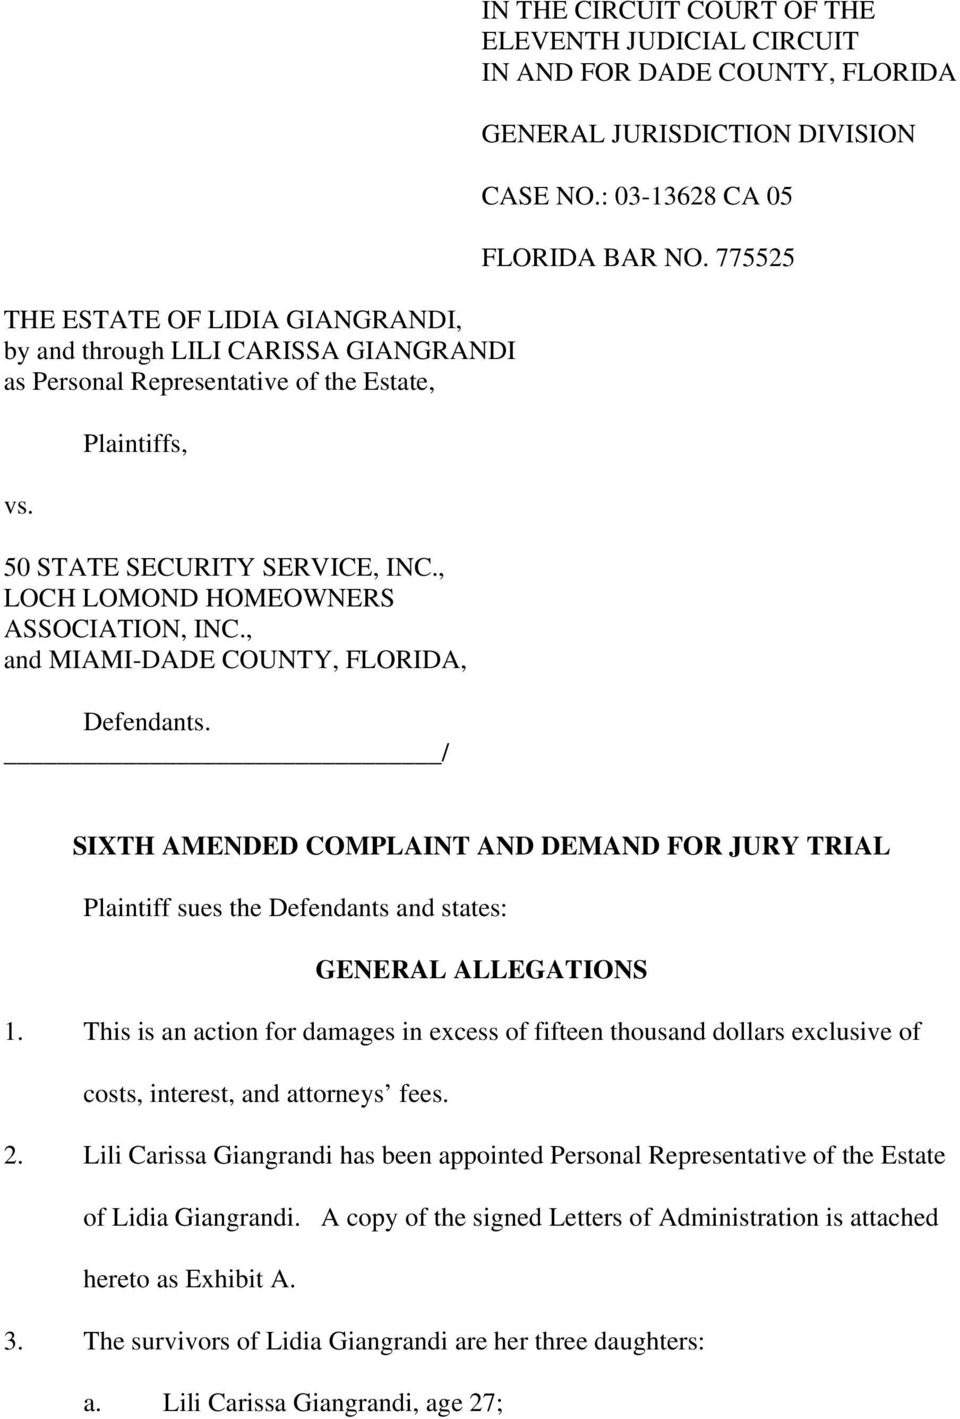 / IN THE CIRCUIT COURT OF THE ELEVENTH JUDICIAL CIRCUIT IN AND FOR DADE COUNTY, FLORIDA GENERAL JURISDICTION DIVISION CASE NO.: 03-13628 CA 05 FLORIDA BAR NO.